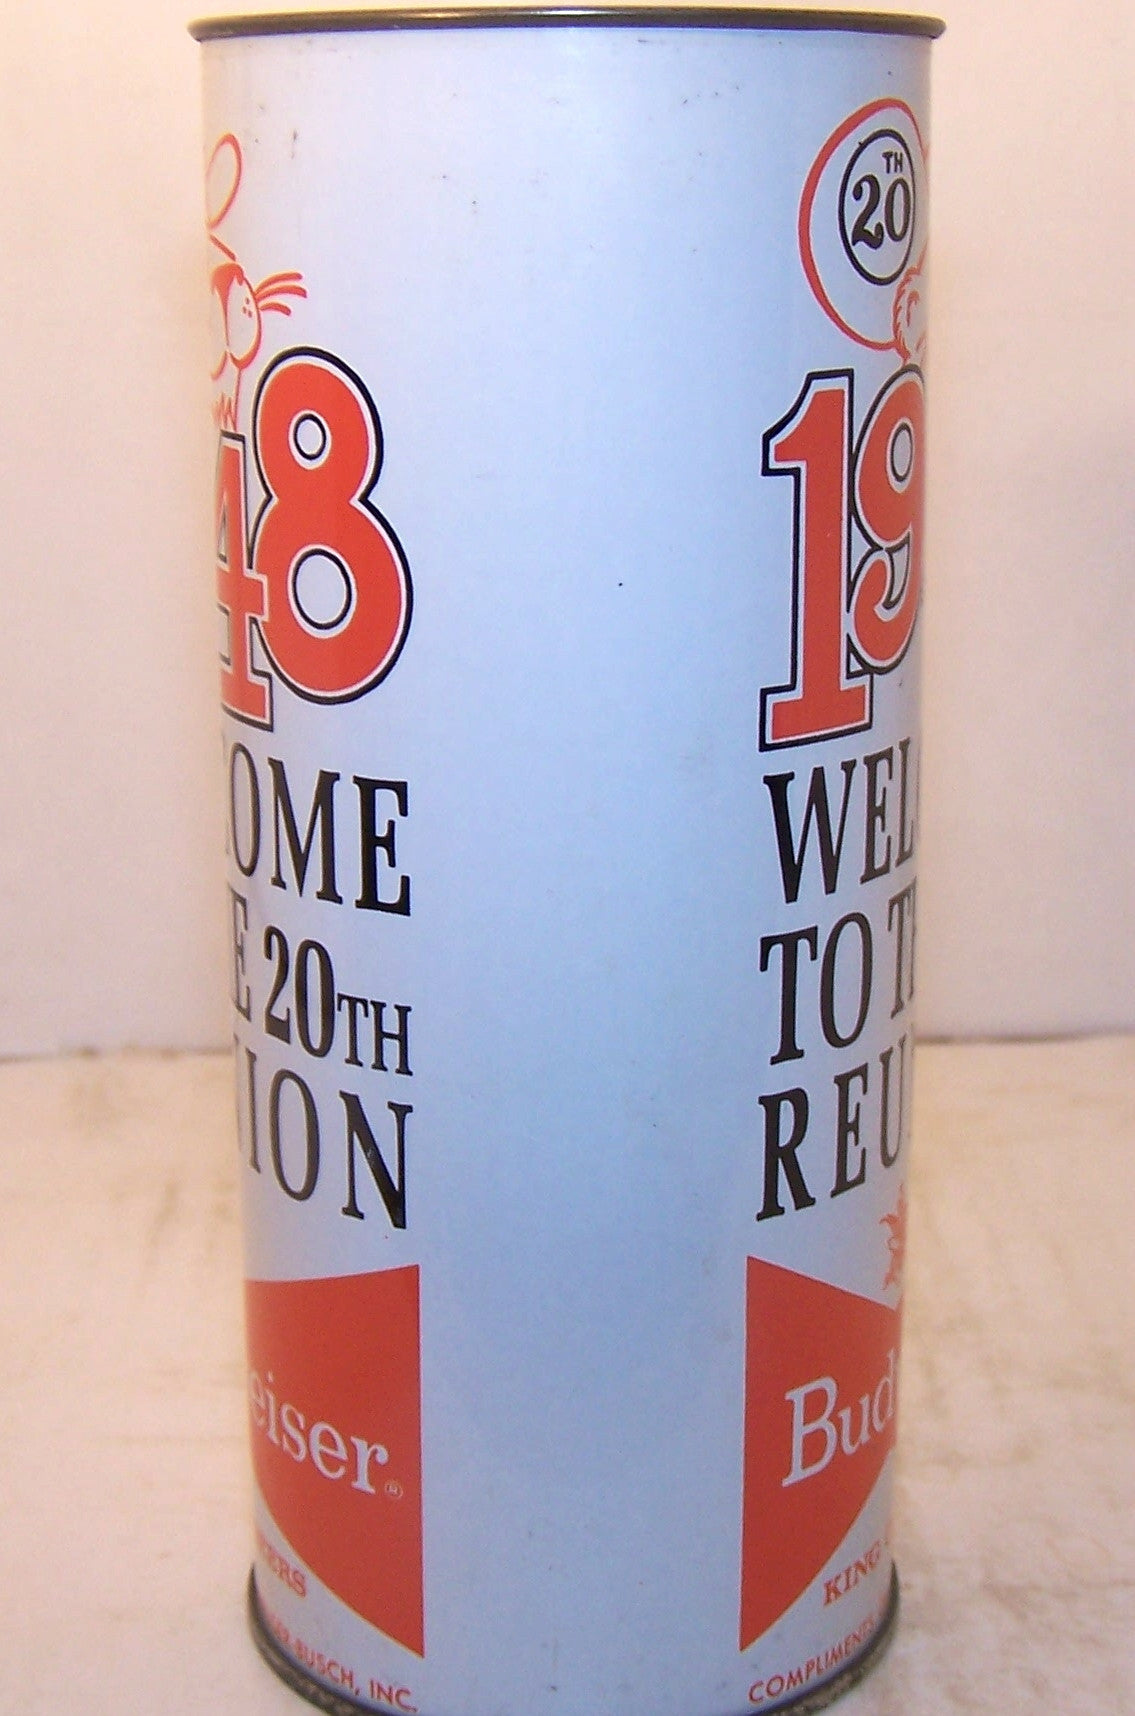 1948 Welcome to the 20th Reunion USBC II 219-2 Grade A1+